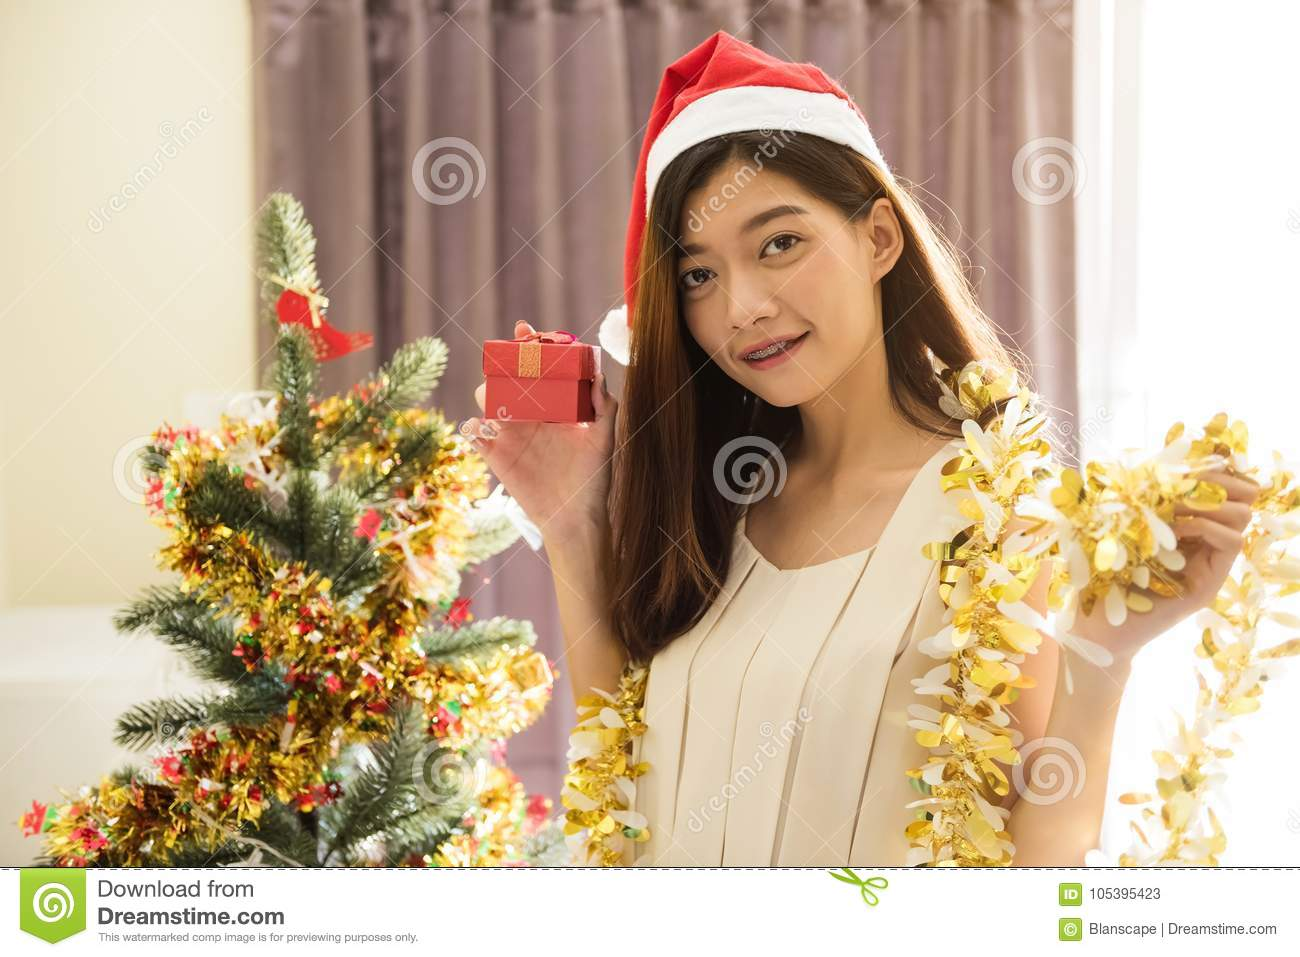 Smile Asian Woman With Christmas Gift Stock Image - Image of bright ...